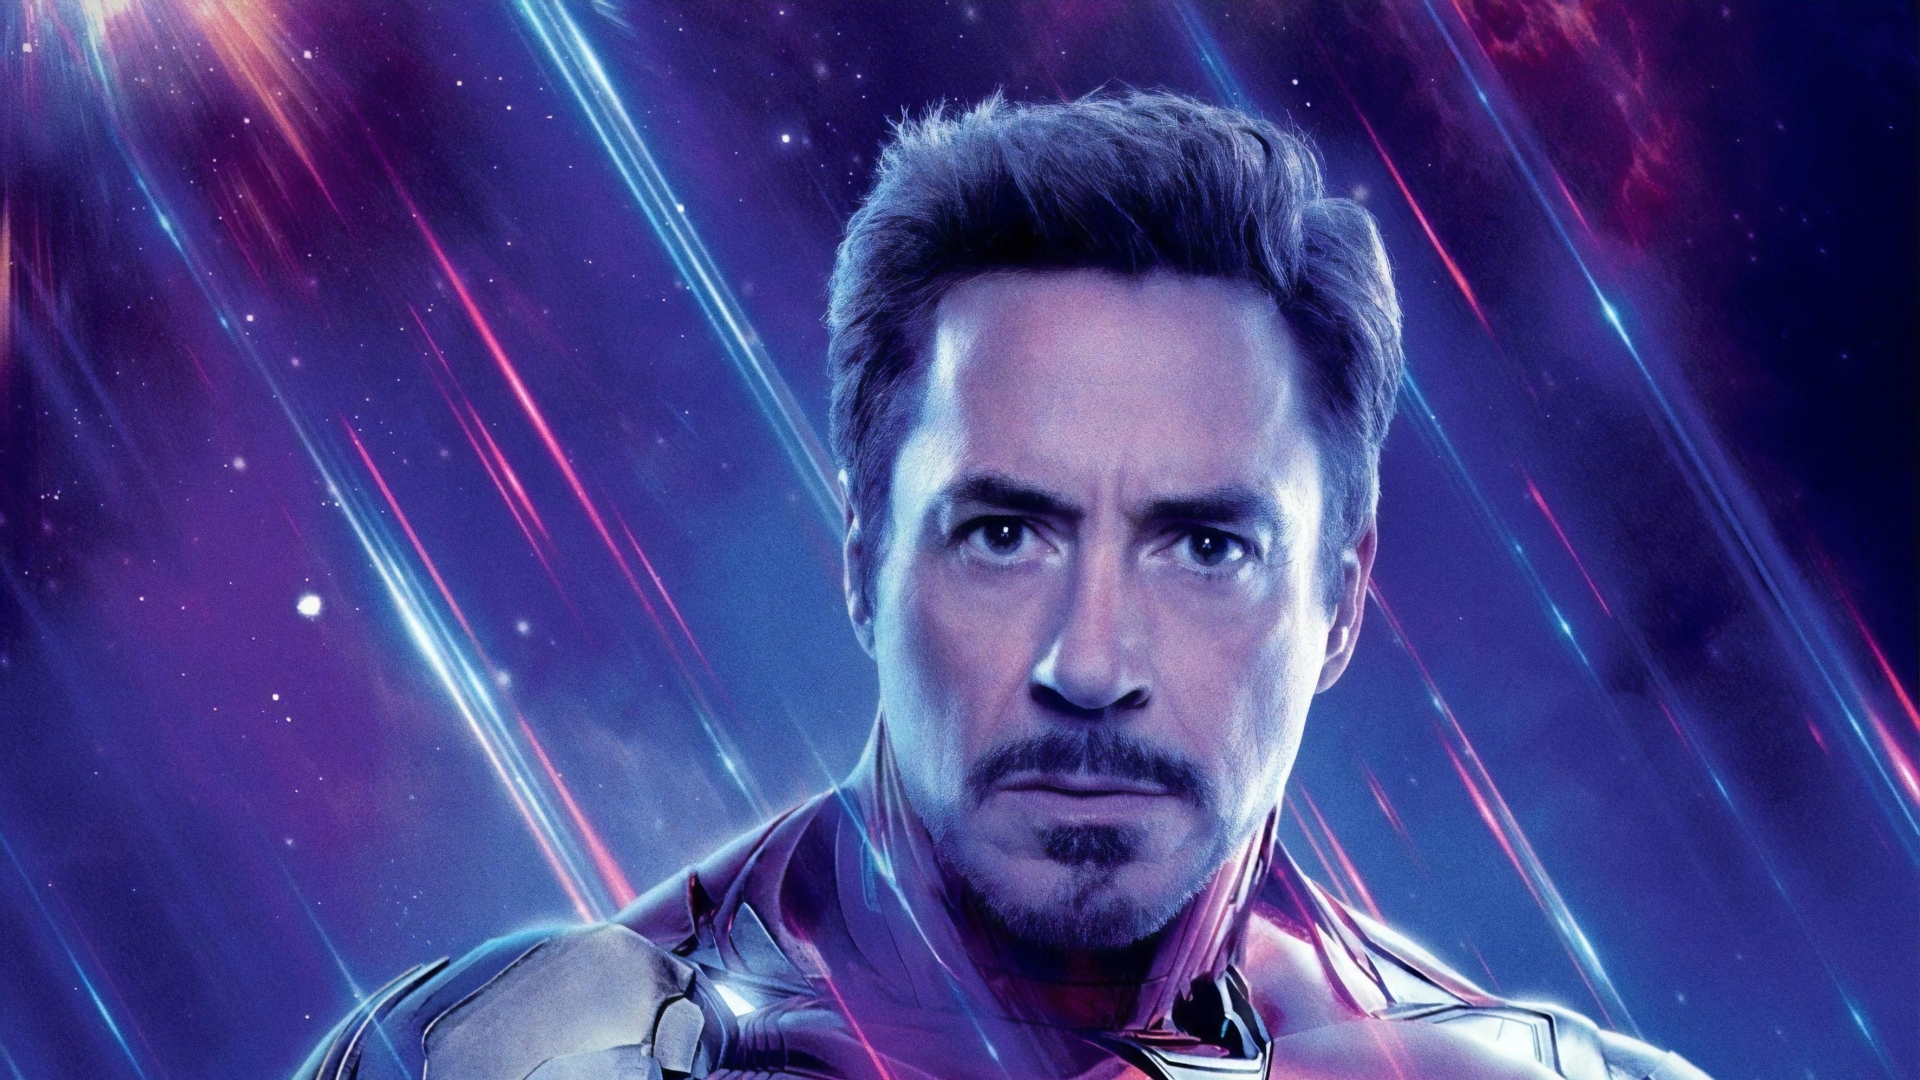 1920x1080 Iron Man In Avengers Endgame 1080p Laptop Full Hd